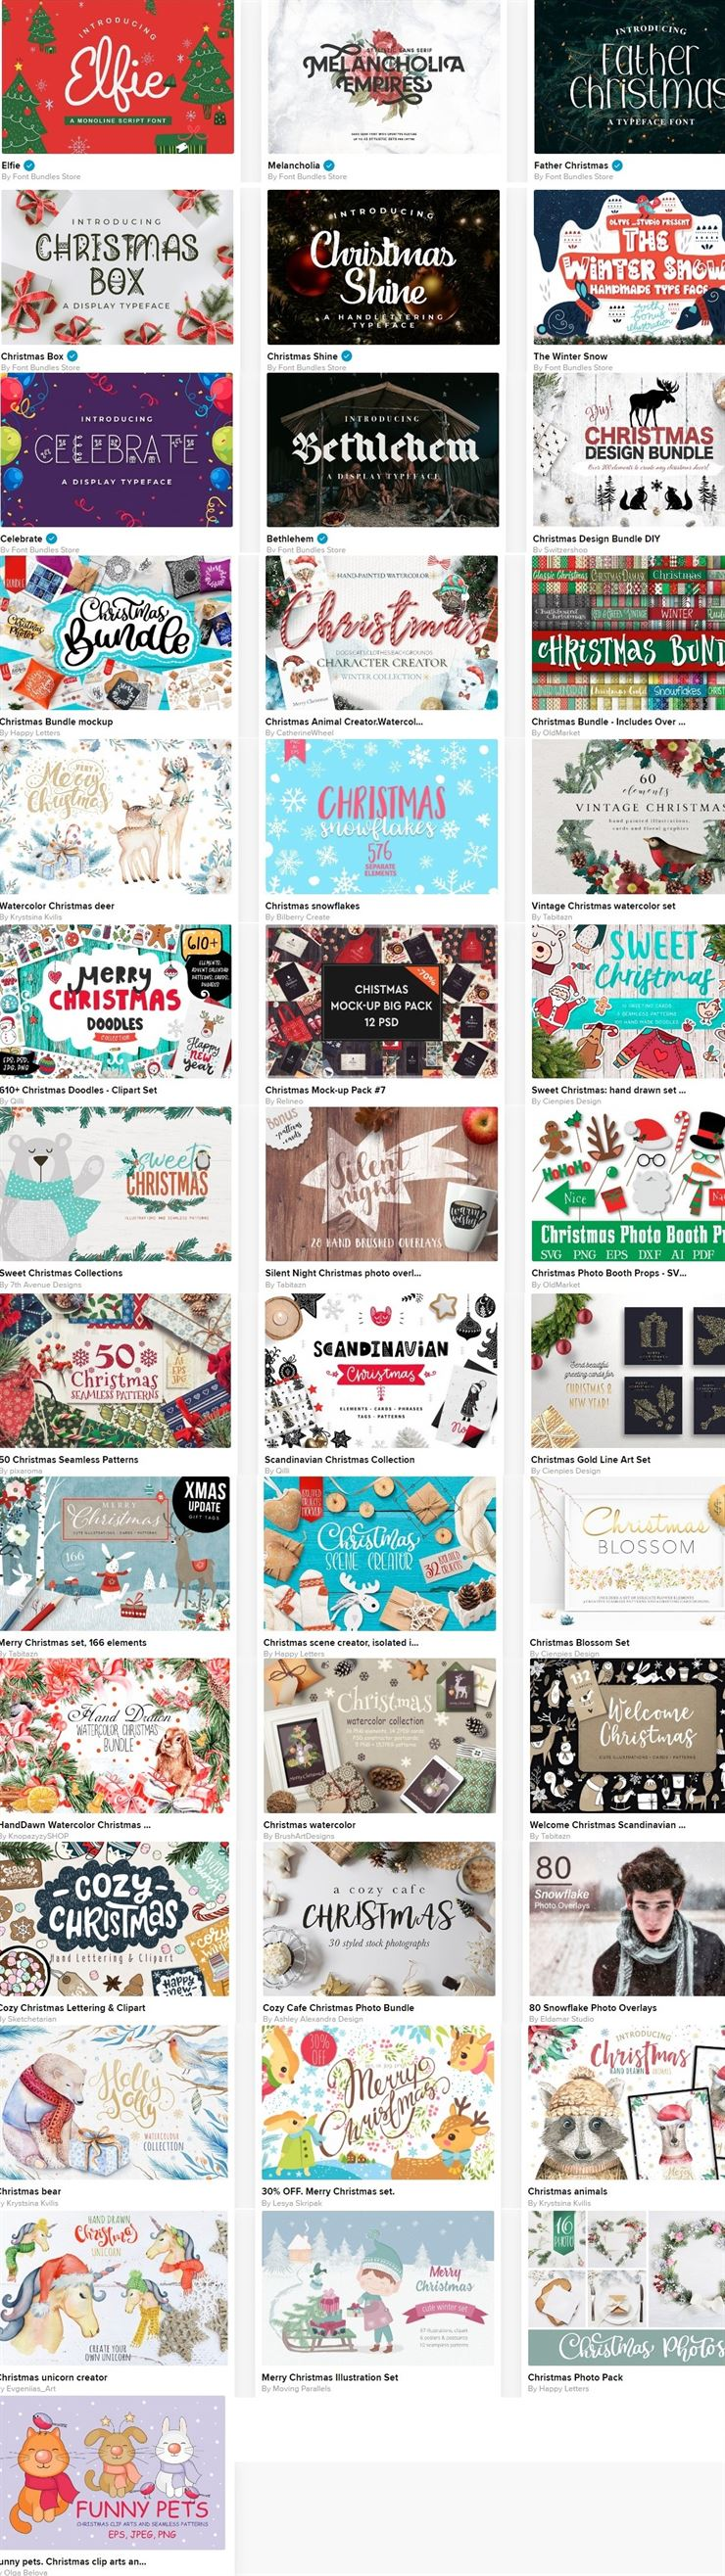 The Christmas Design Bundle Volume III Web3Canvas